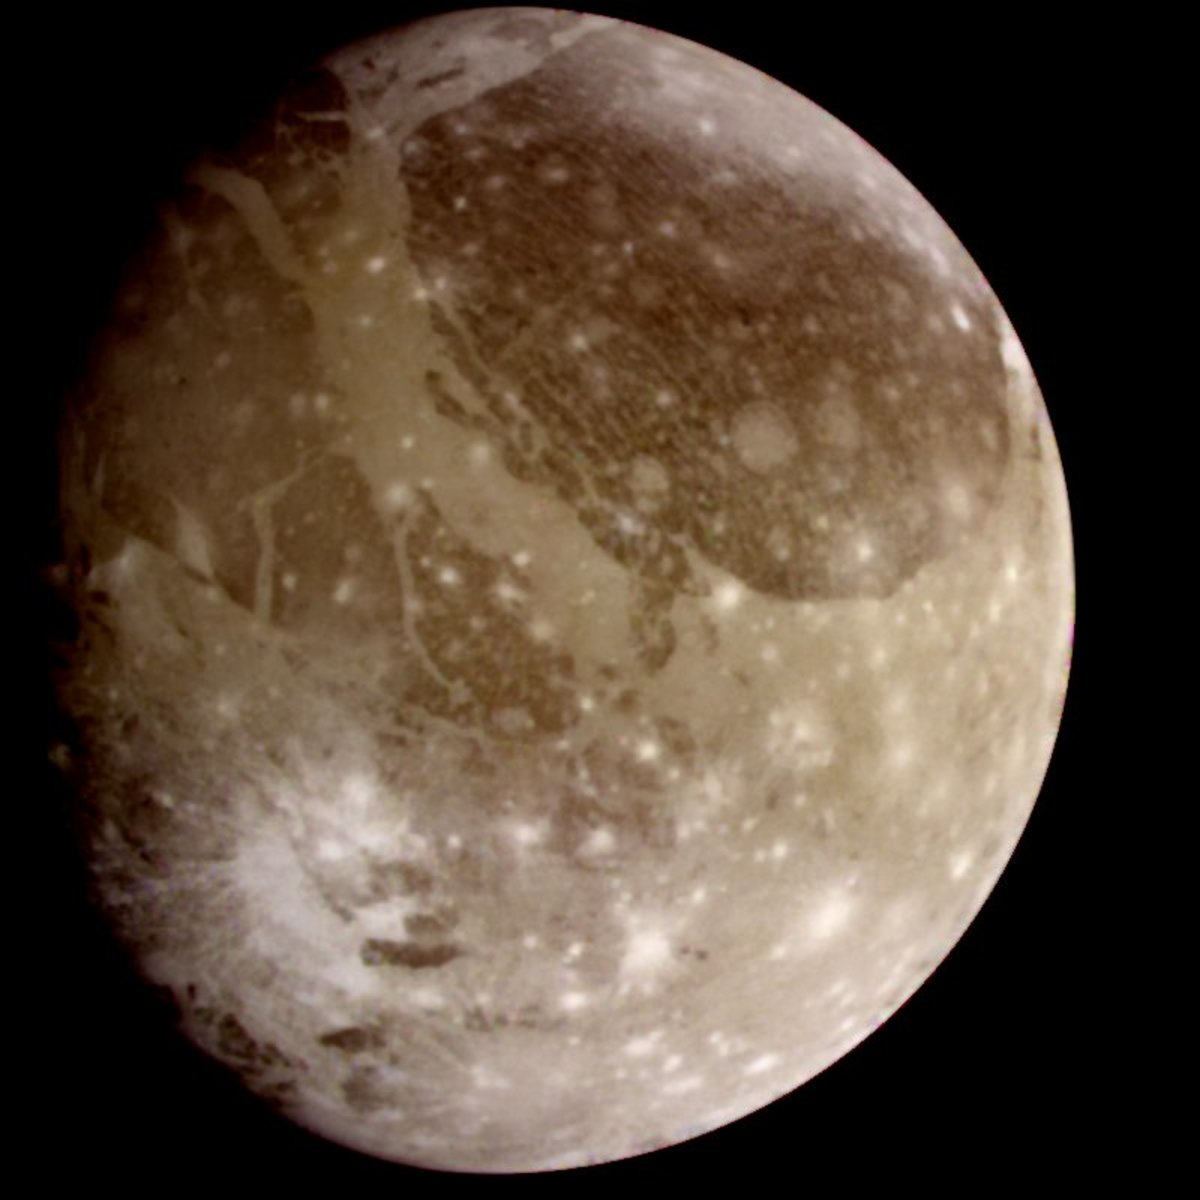 Ganymede, the largest moon in the solar system. The dark areas are older, more heavily cratered regions whereas the lighter areas are younger.